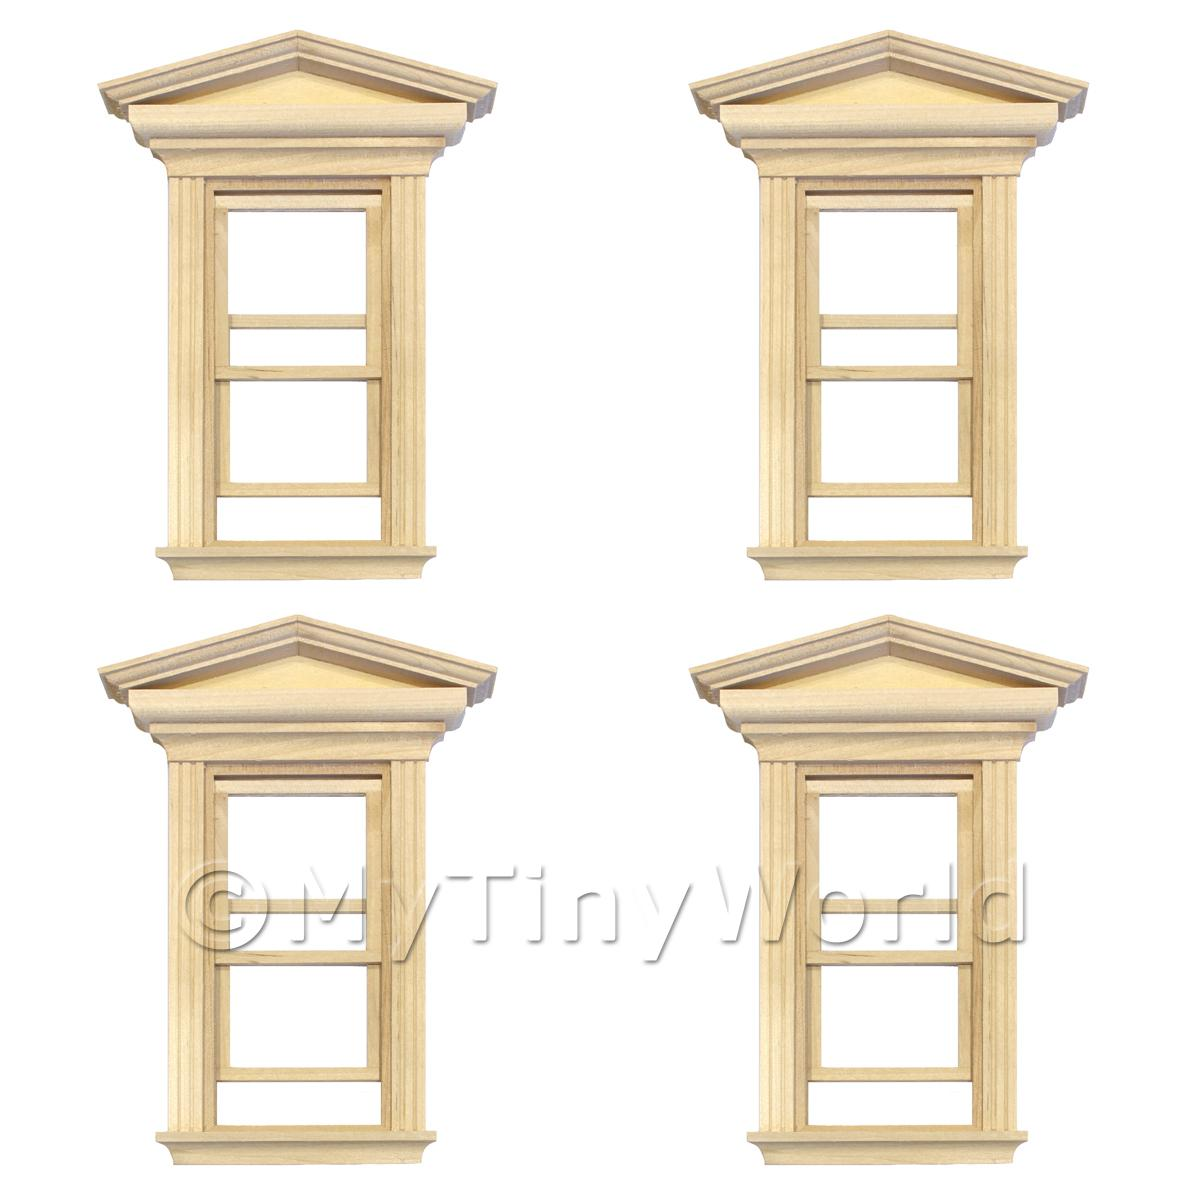 4 x Dolls House Single Opening Sash Window With Pointed Parapet